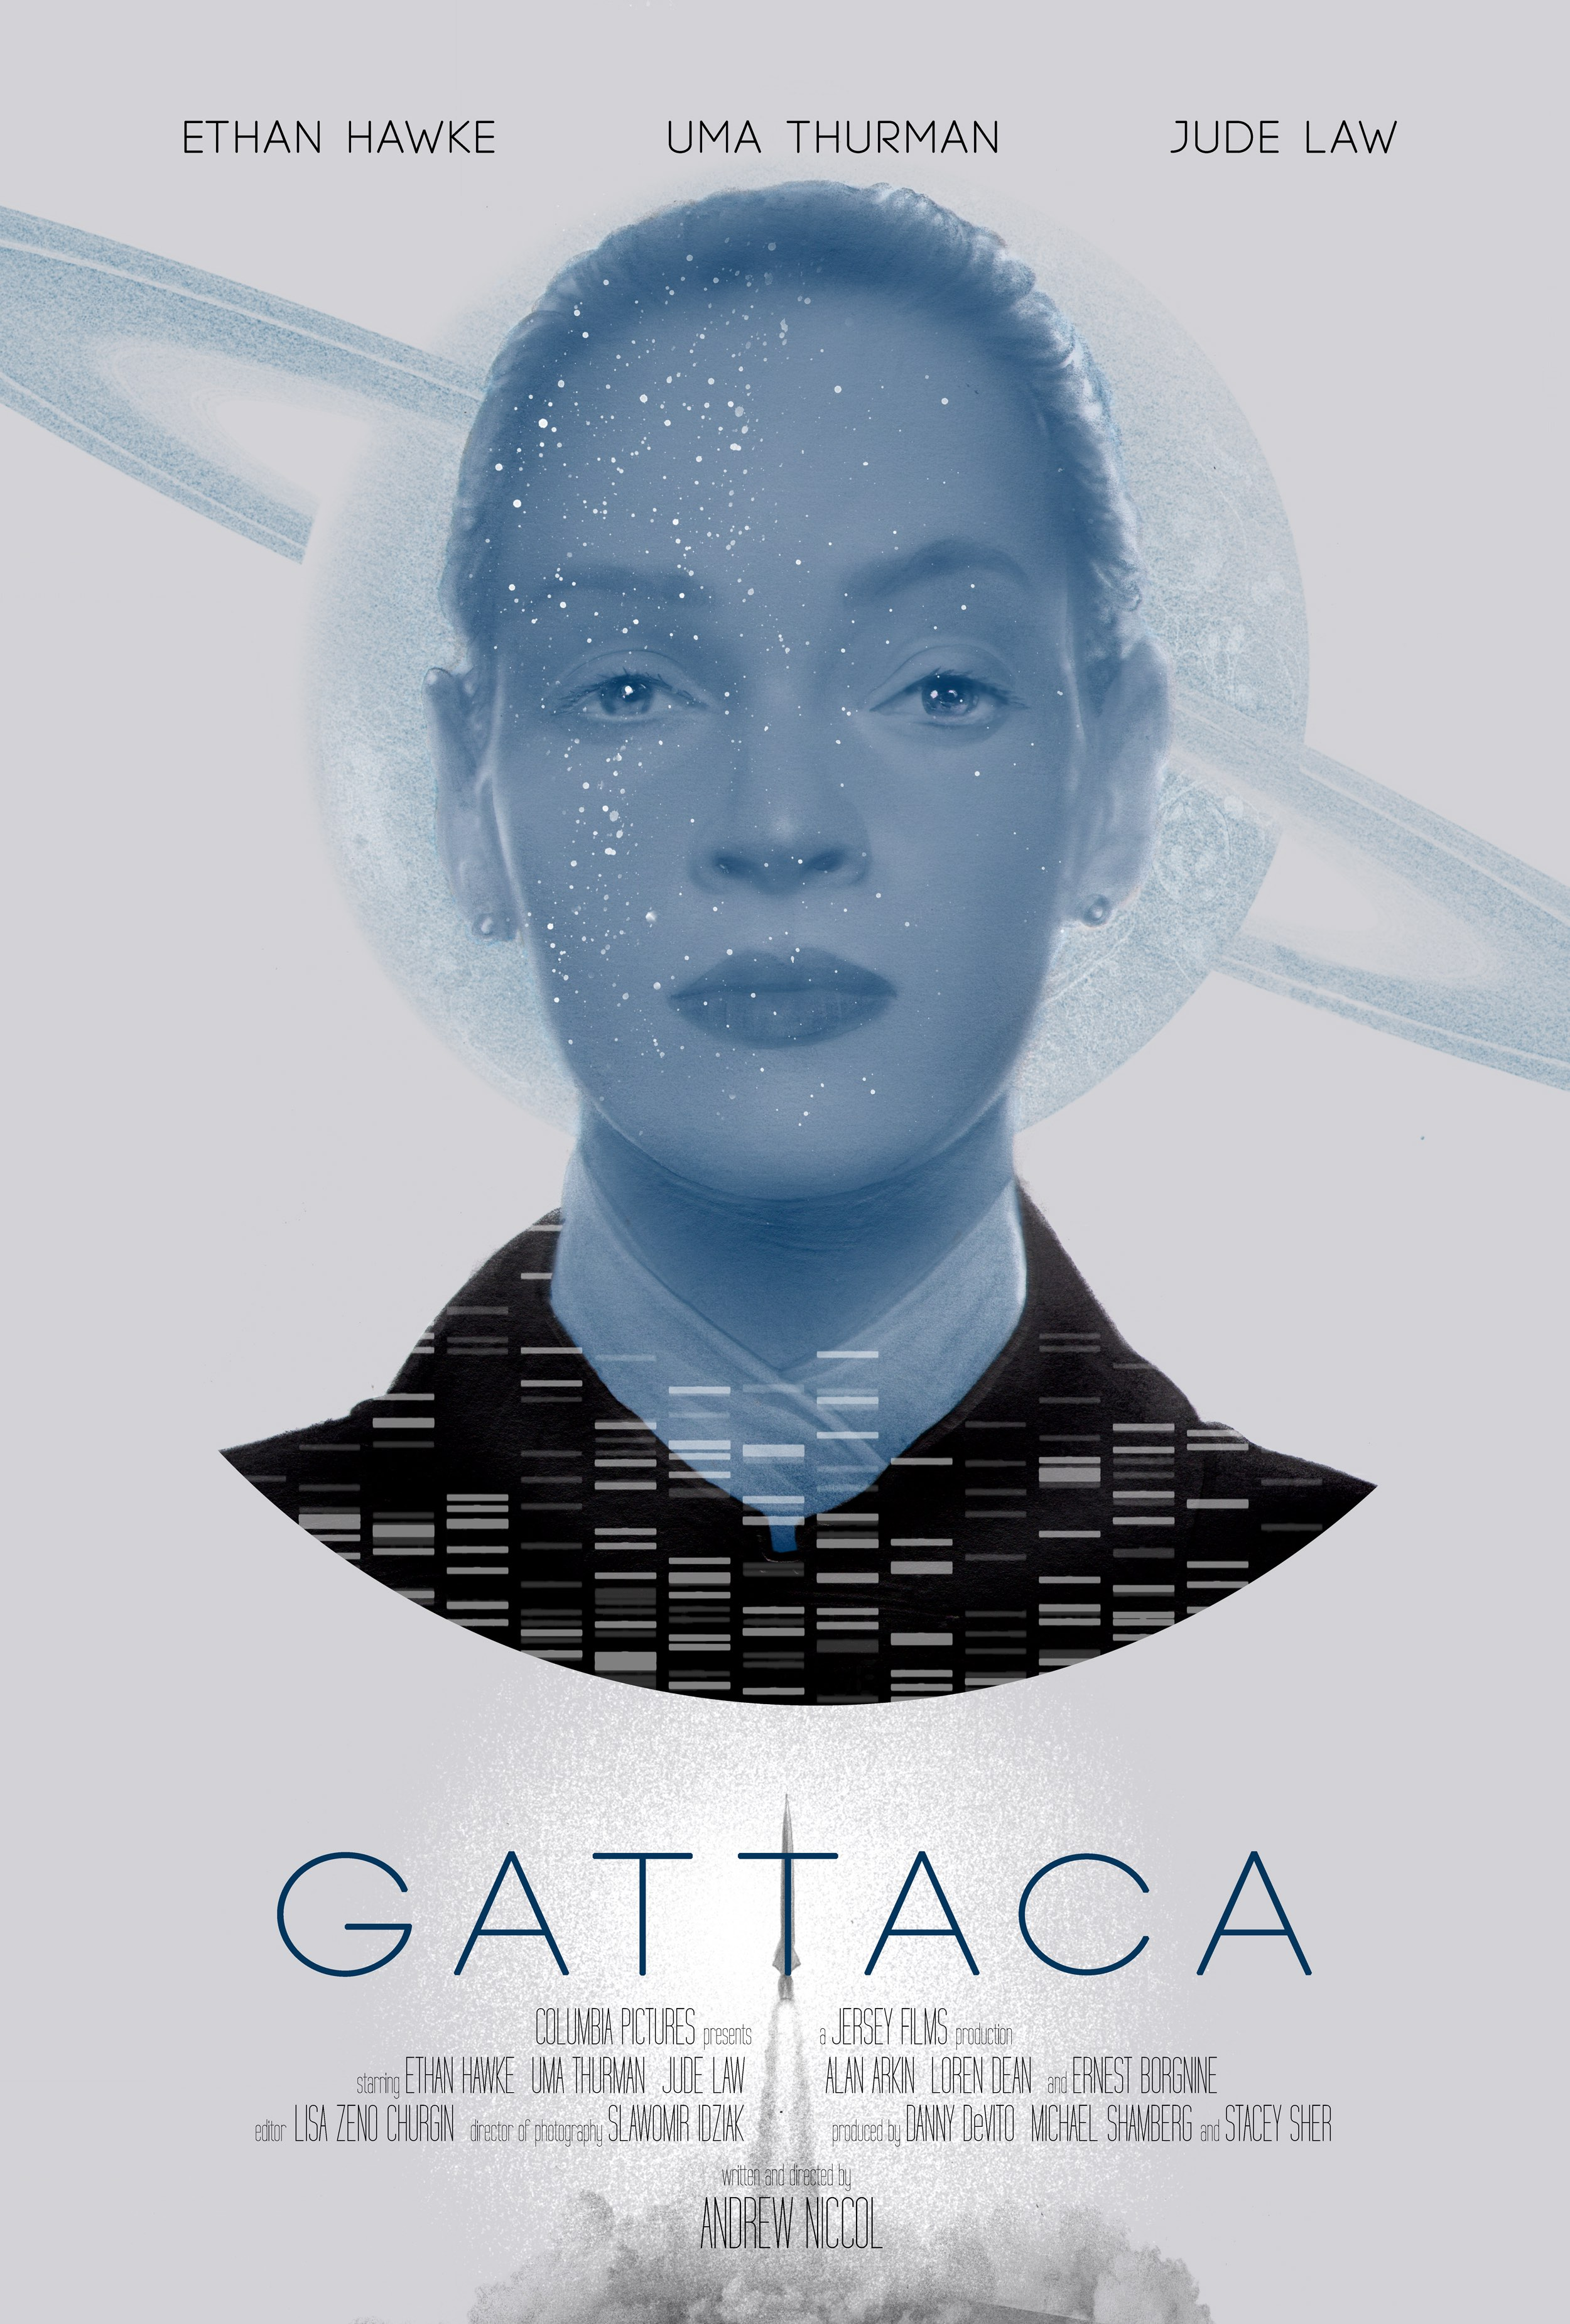 """Gattaca - Valid"" by Greg Ruth.  24"" x 36"" on Pearlescent paper.  Timed max edition of 50.  £54 ($68)"